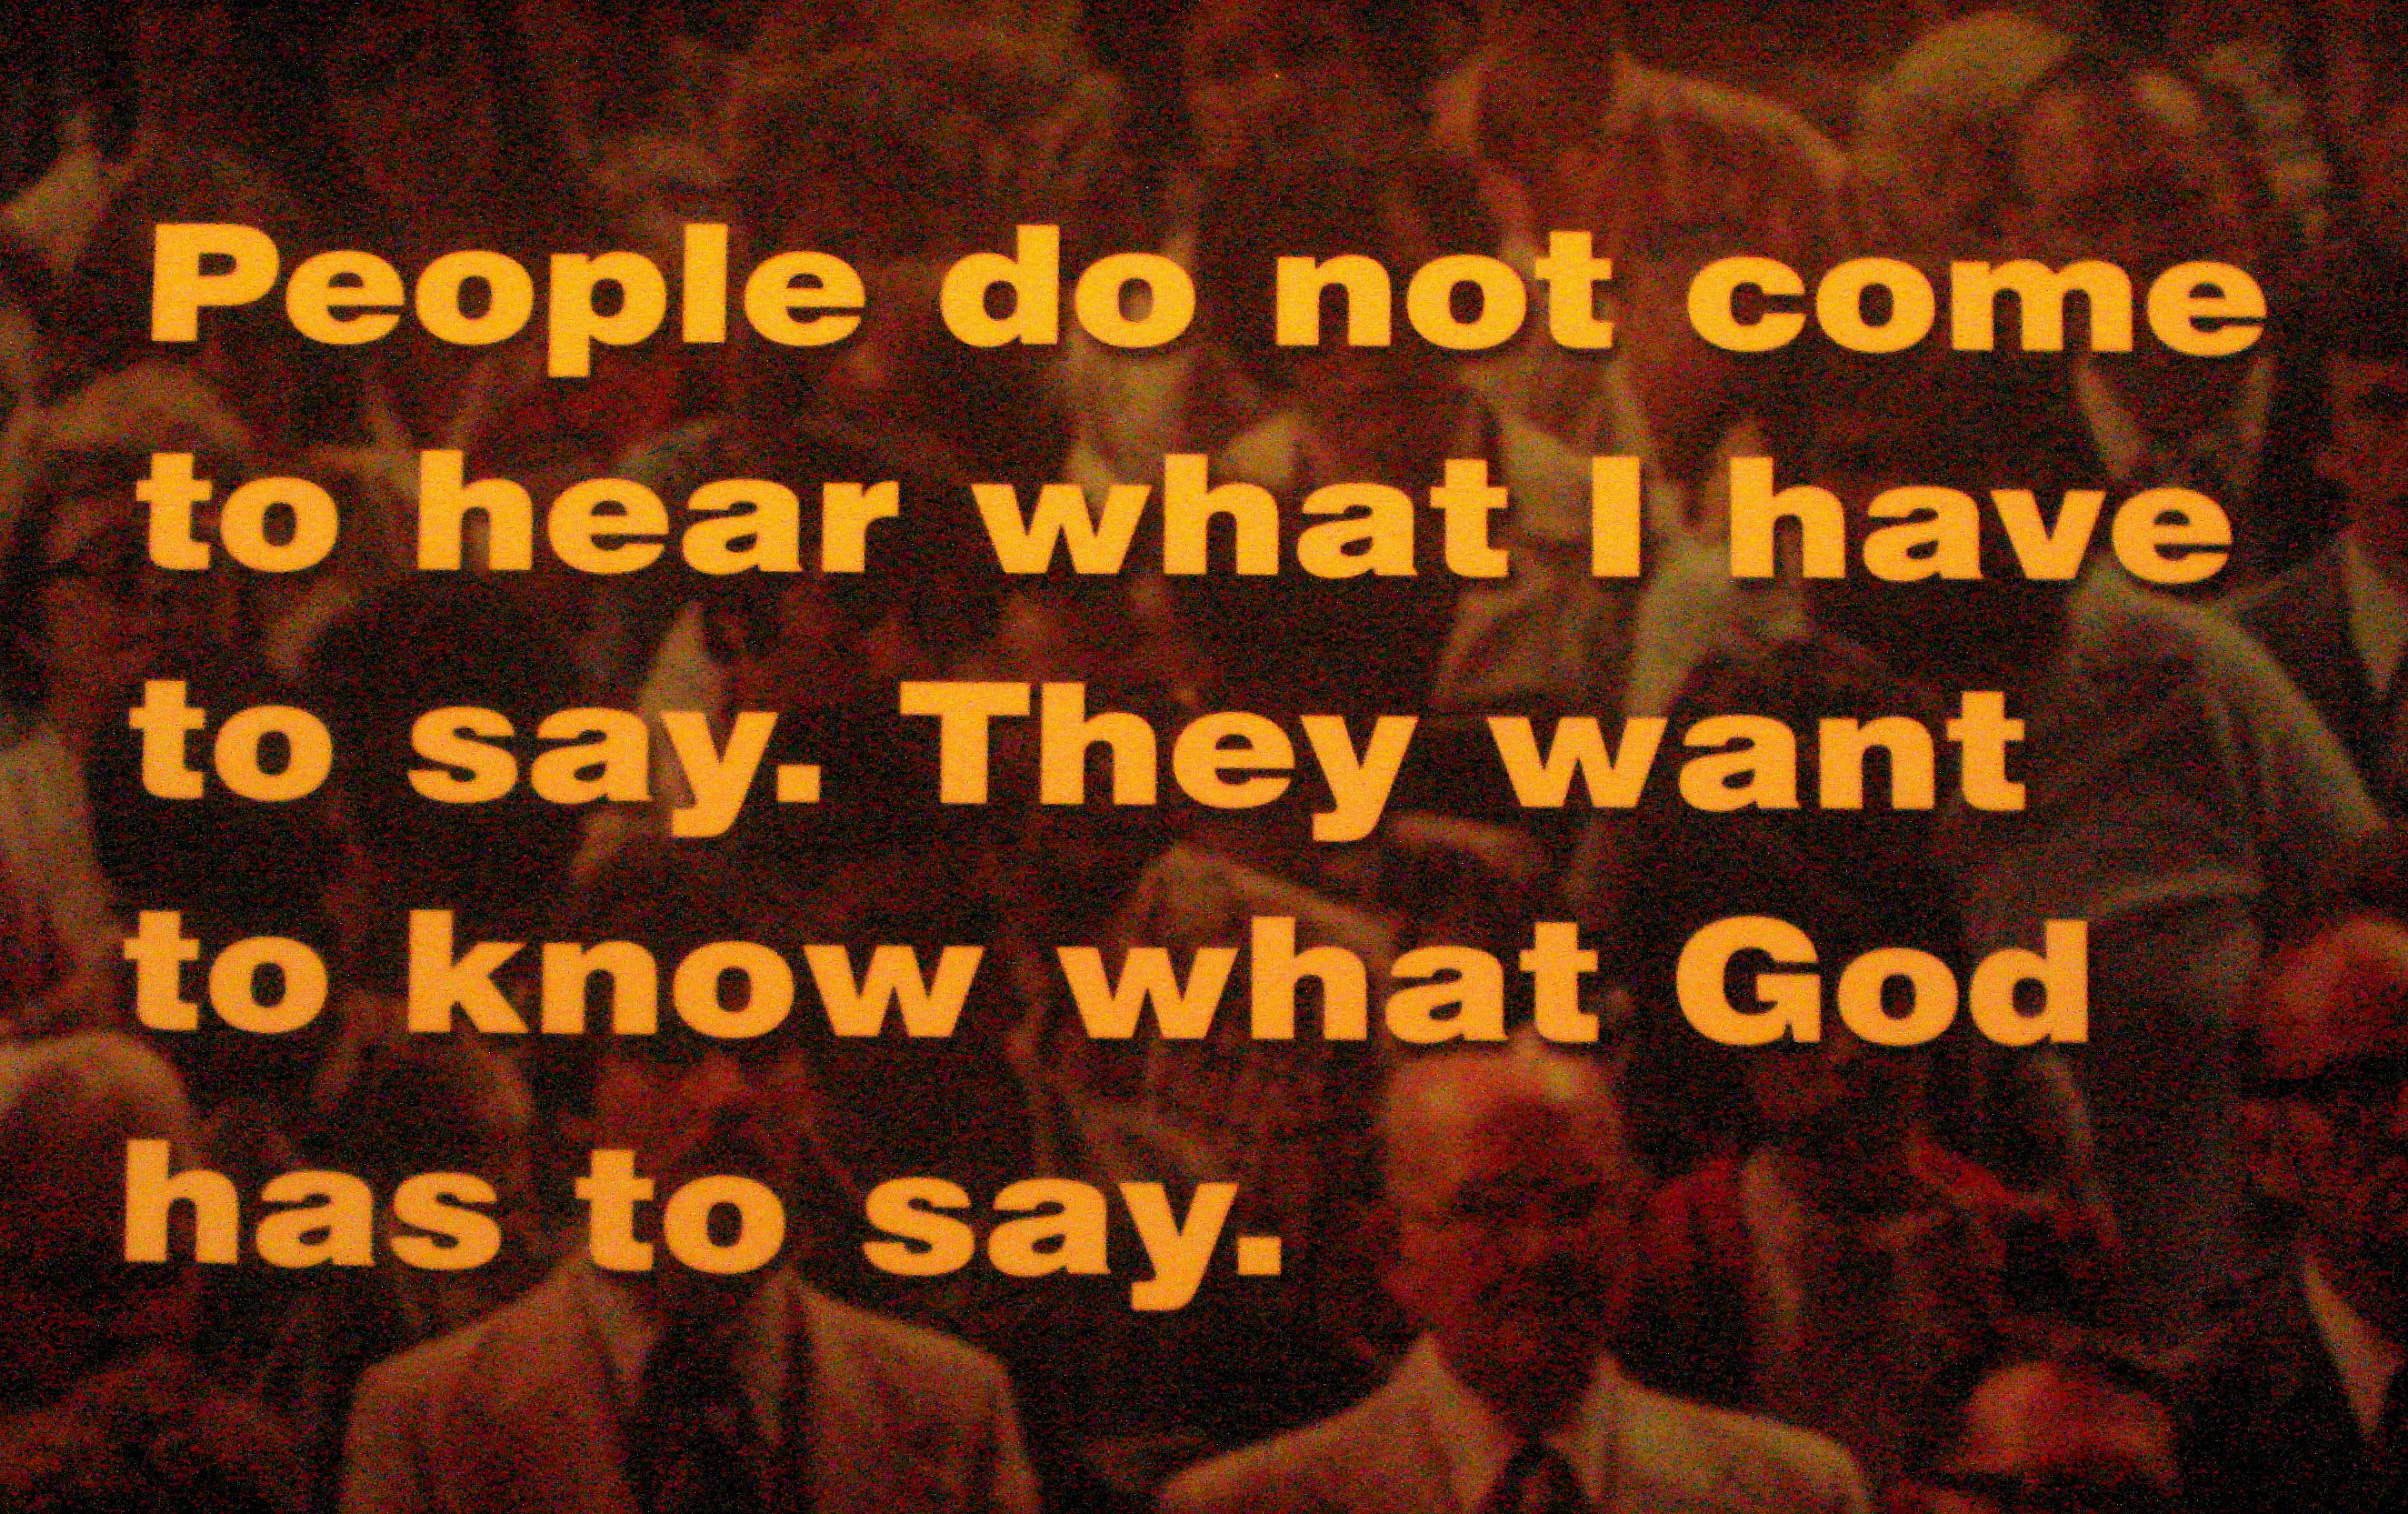 Quote Word Of God Wallpaper   Christian Wallpapers and Backgrounds 2649x1665